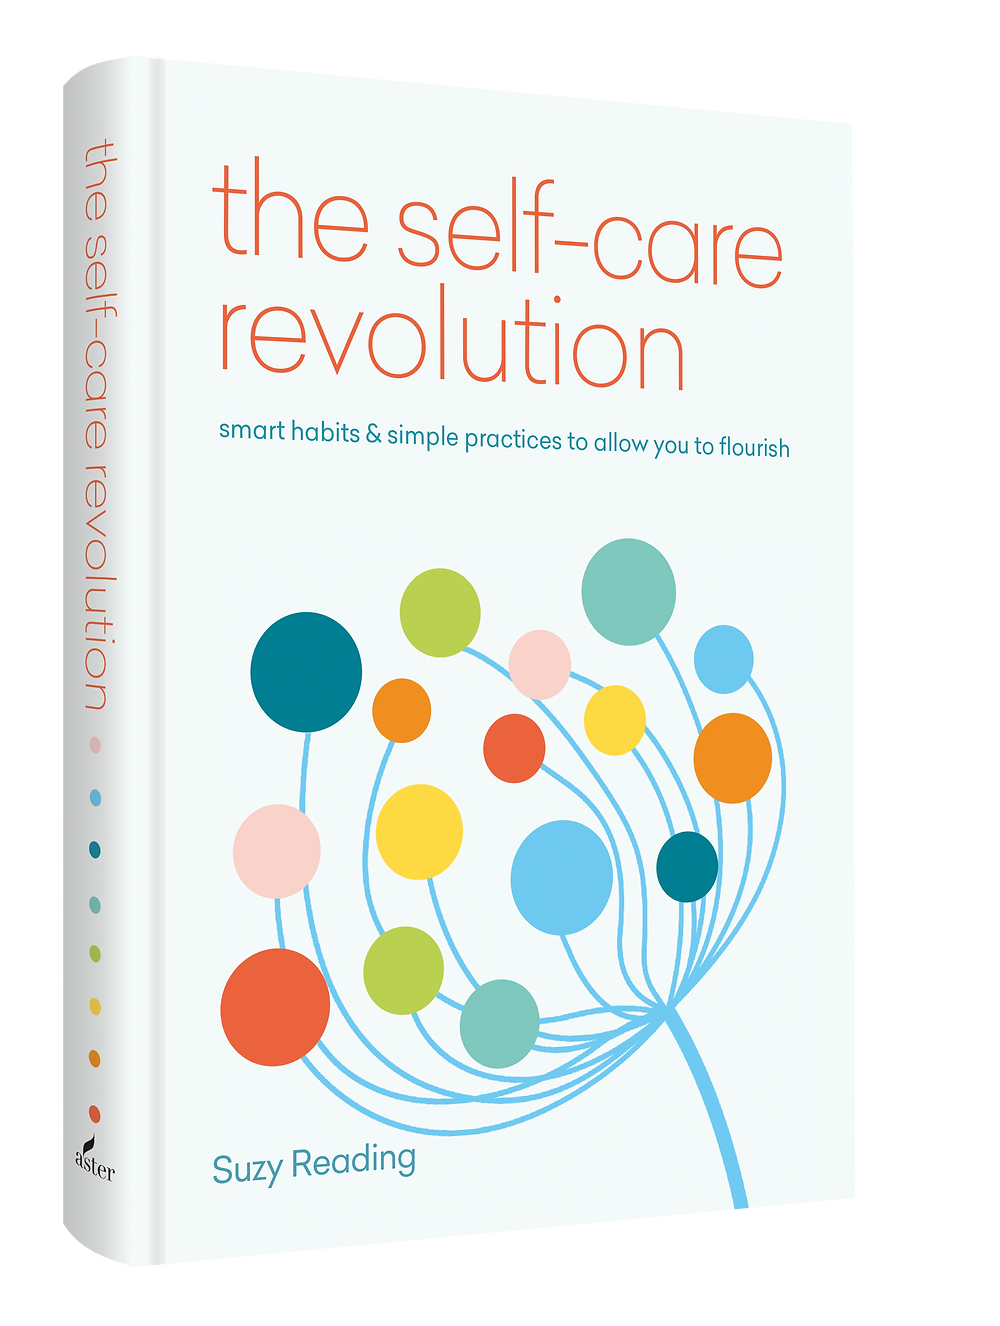 picture of book suzy reading self-care revolution